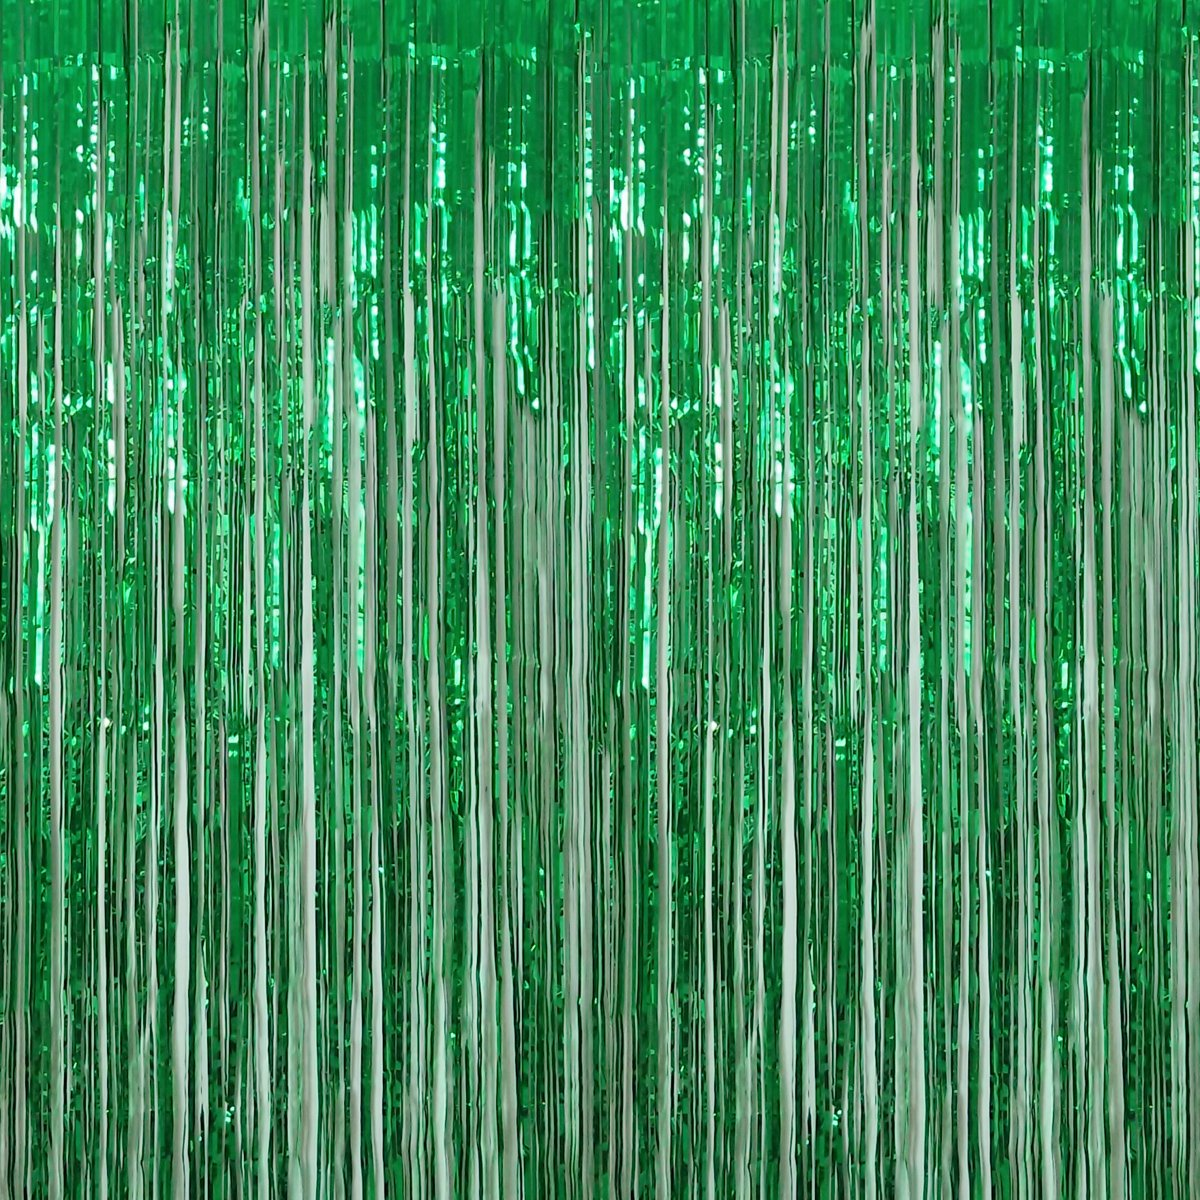 Anhoo 3.2 ft x 9.8 ft Metallic Tinsel Foil Fringe Curtains for Party Photo Backdrop Wedding Event Decoration (Green,3 pcs) by Anhoo